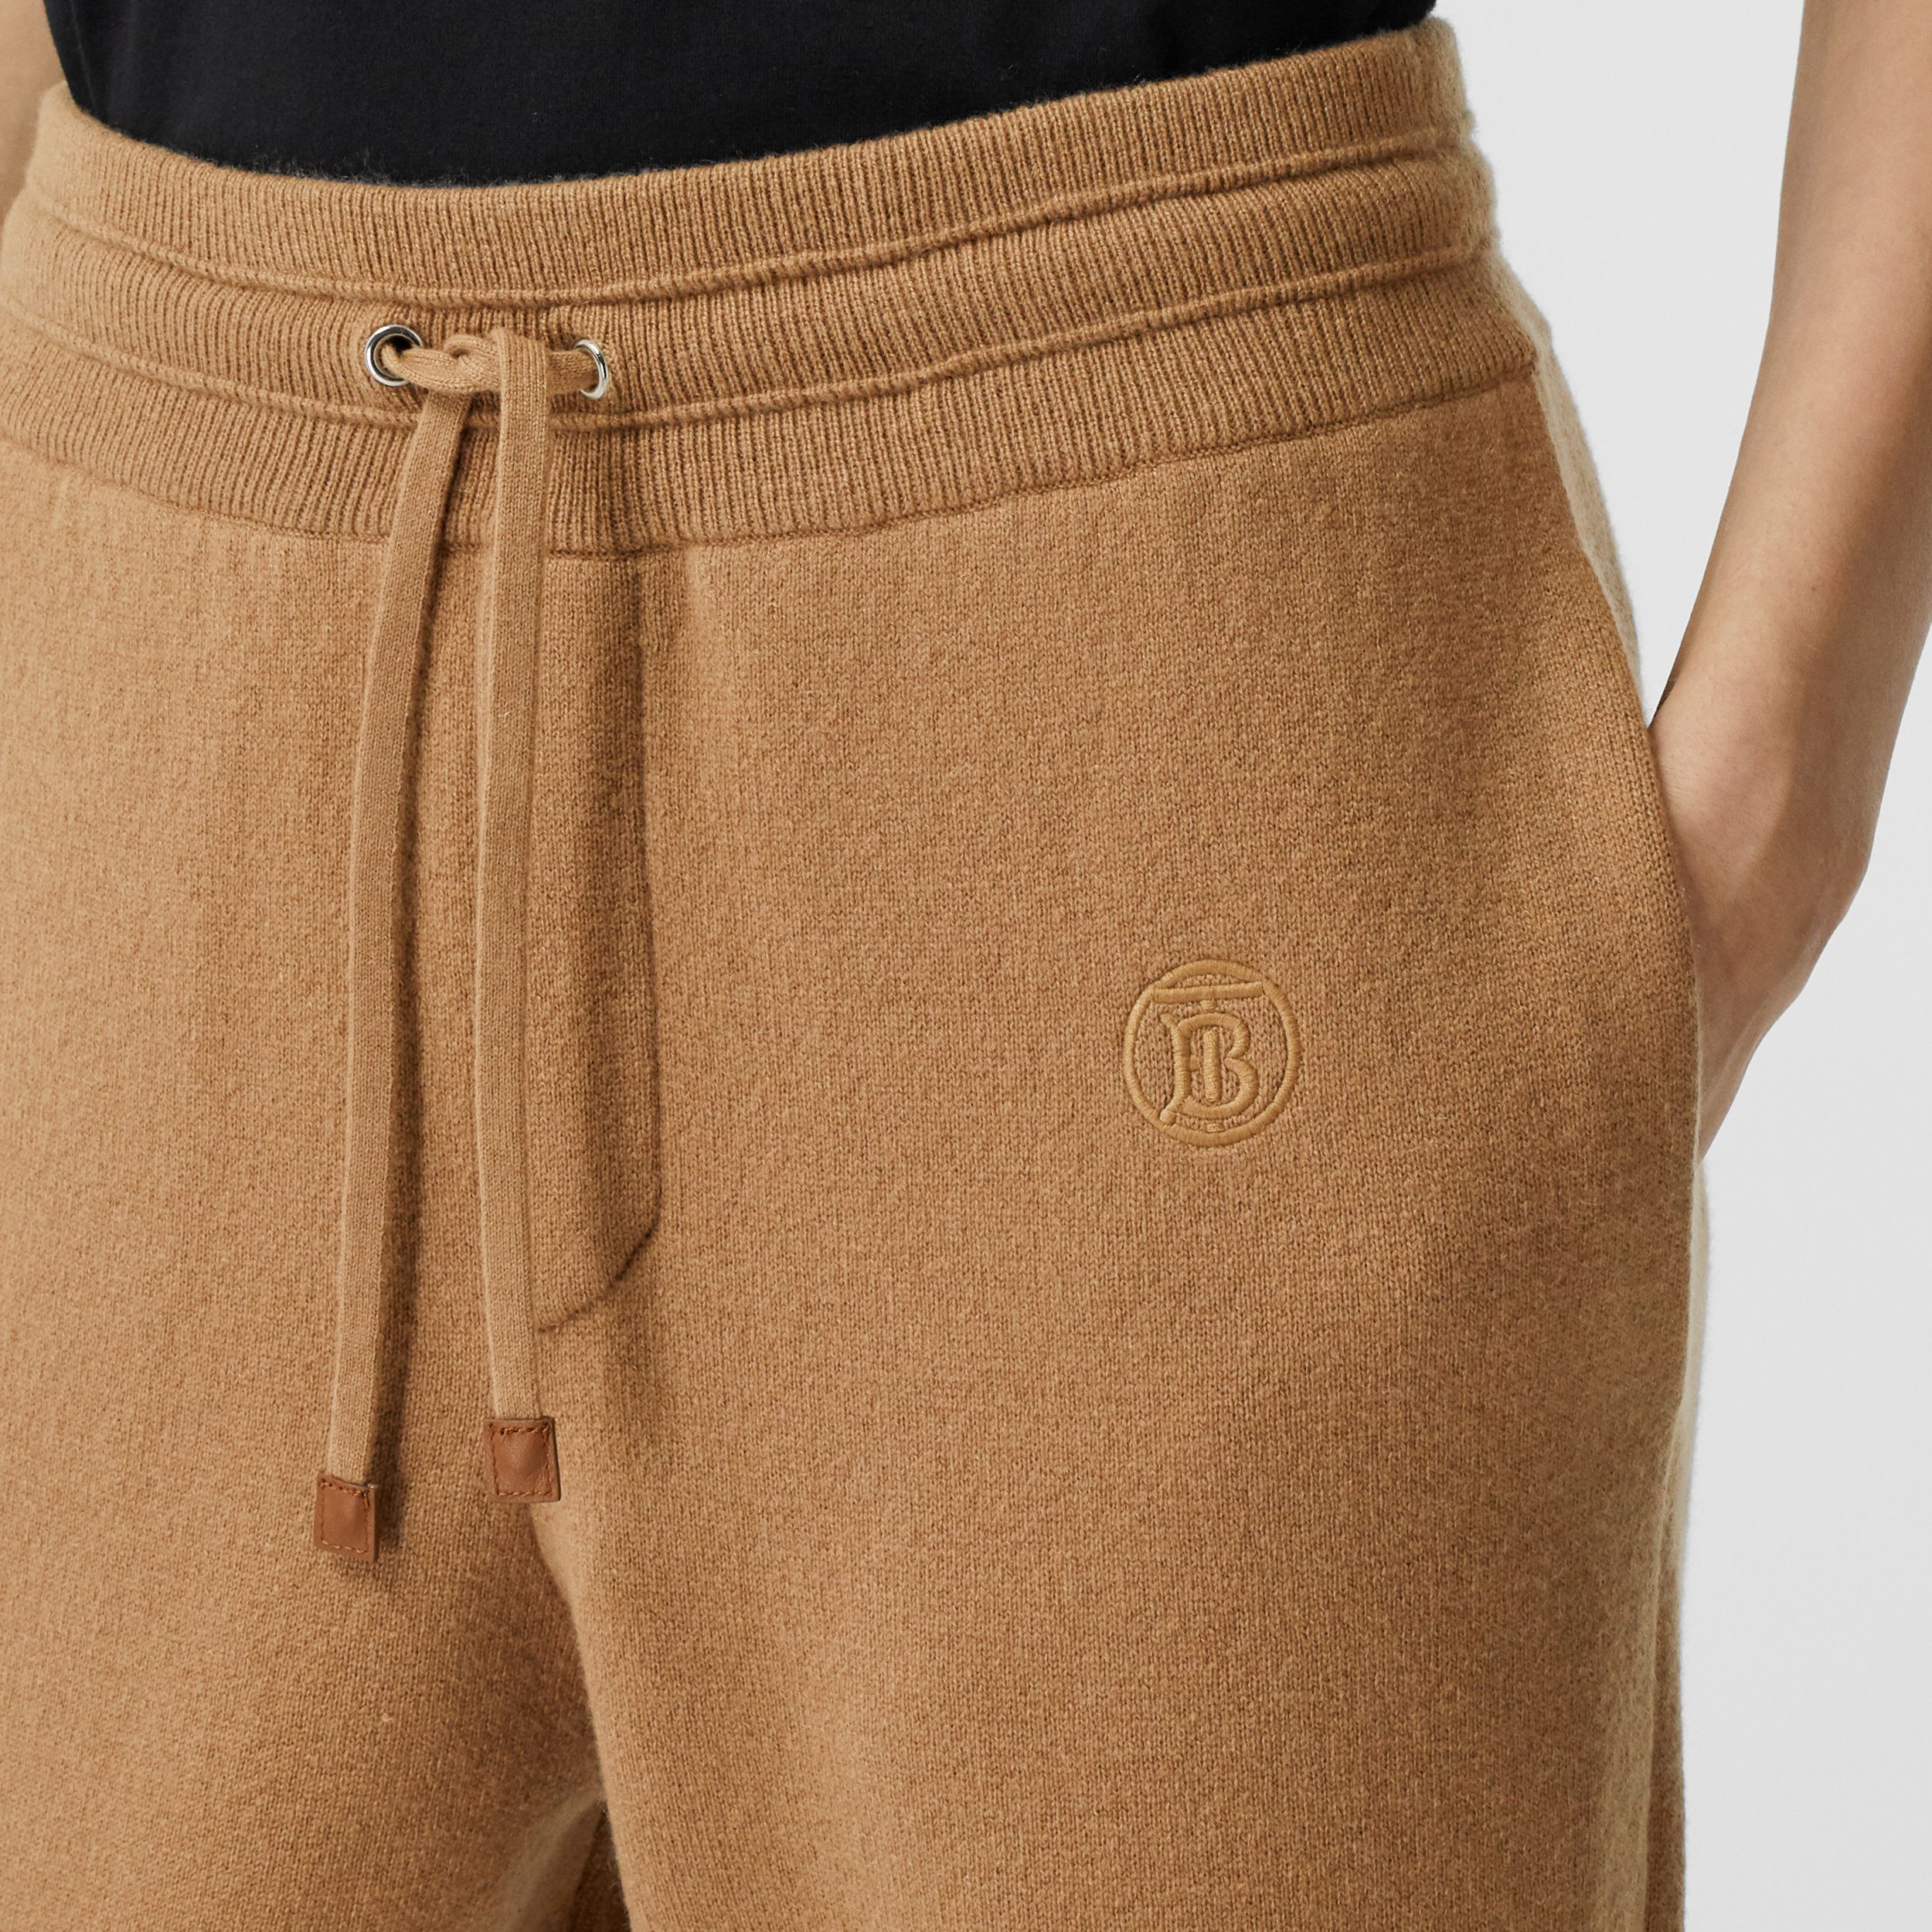 Monogram Motif Cashmere Blend Jogging Pants in Camel - Women | Burberry - 2